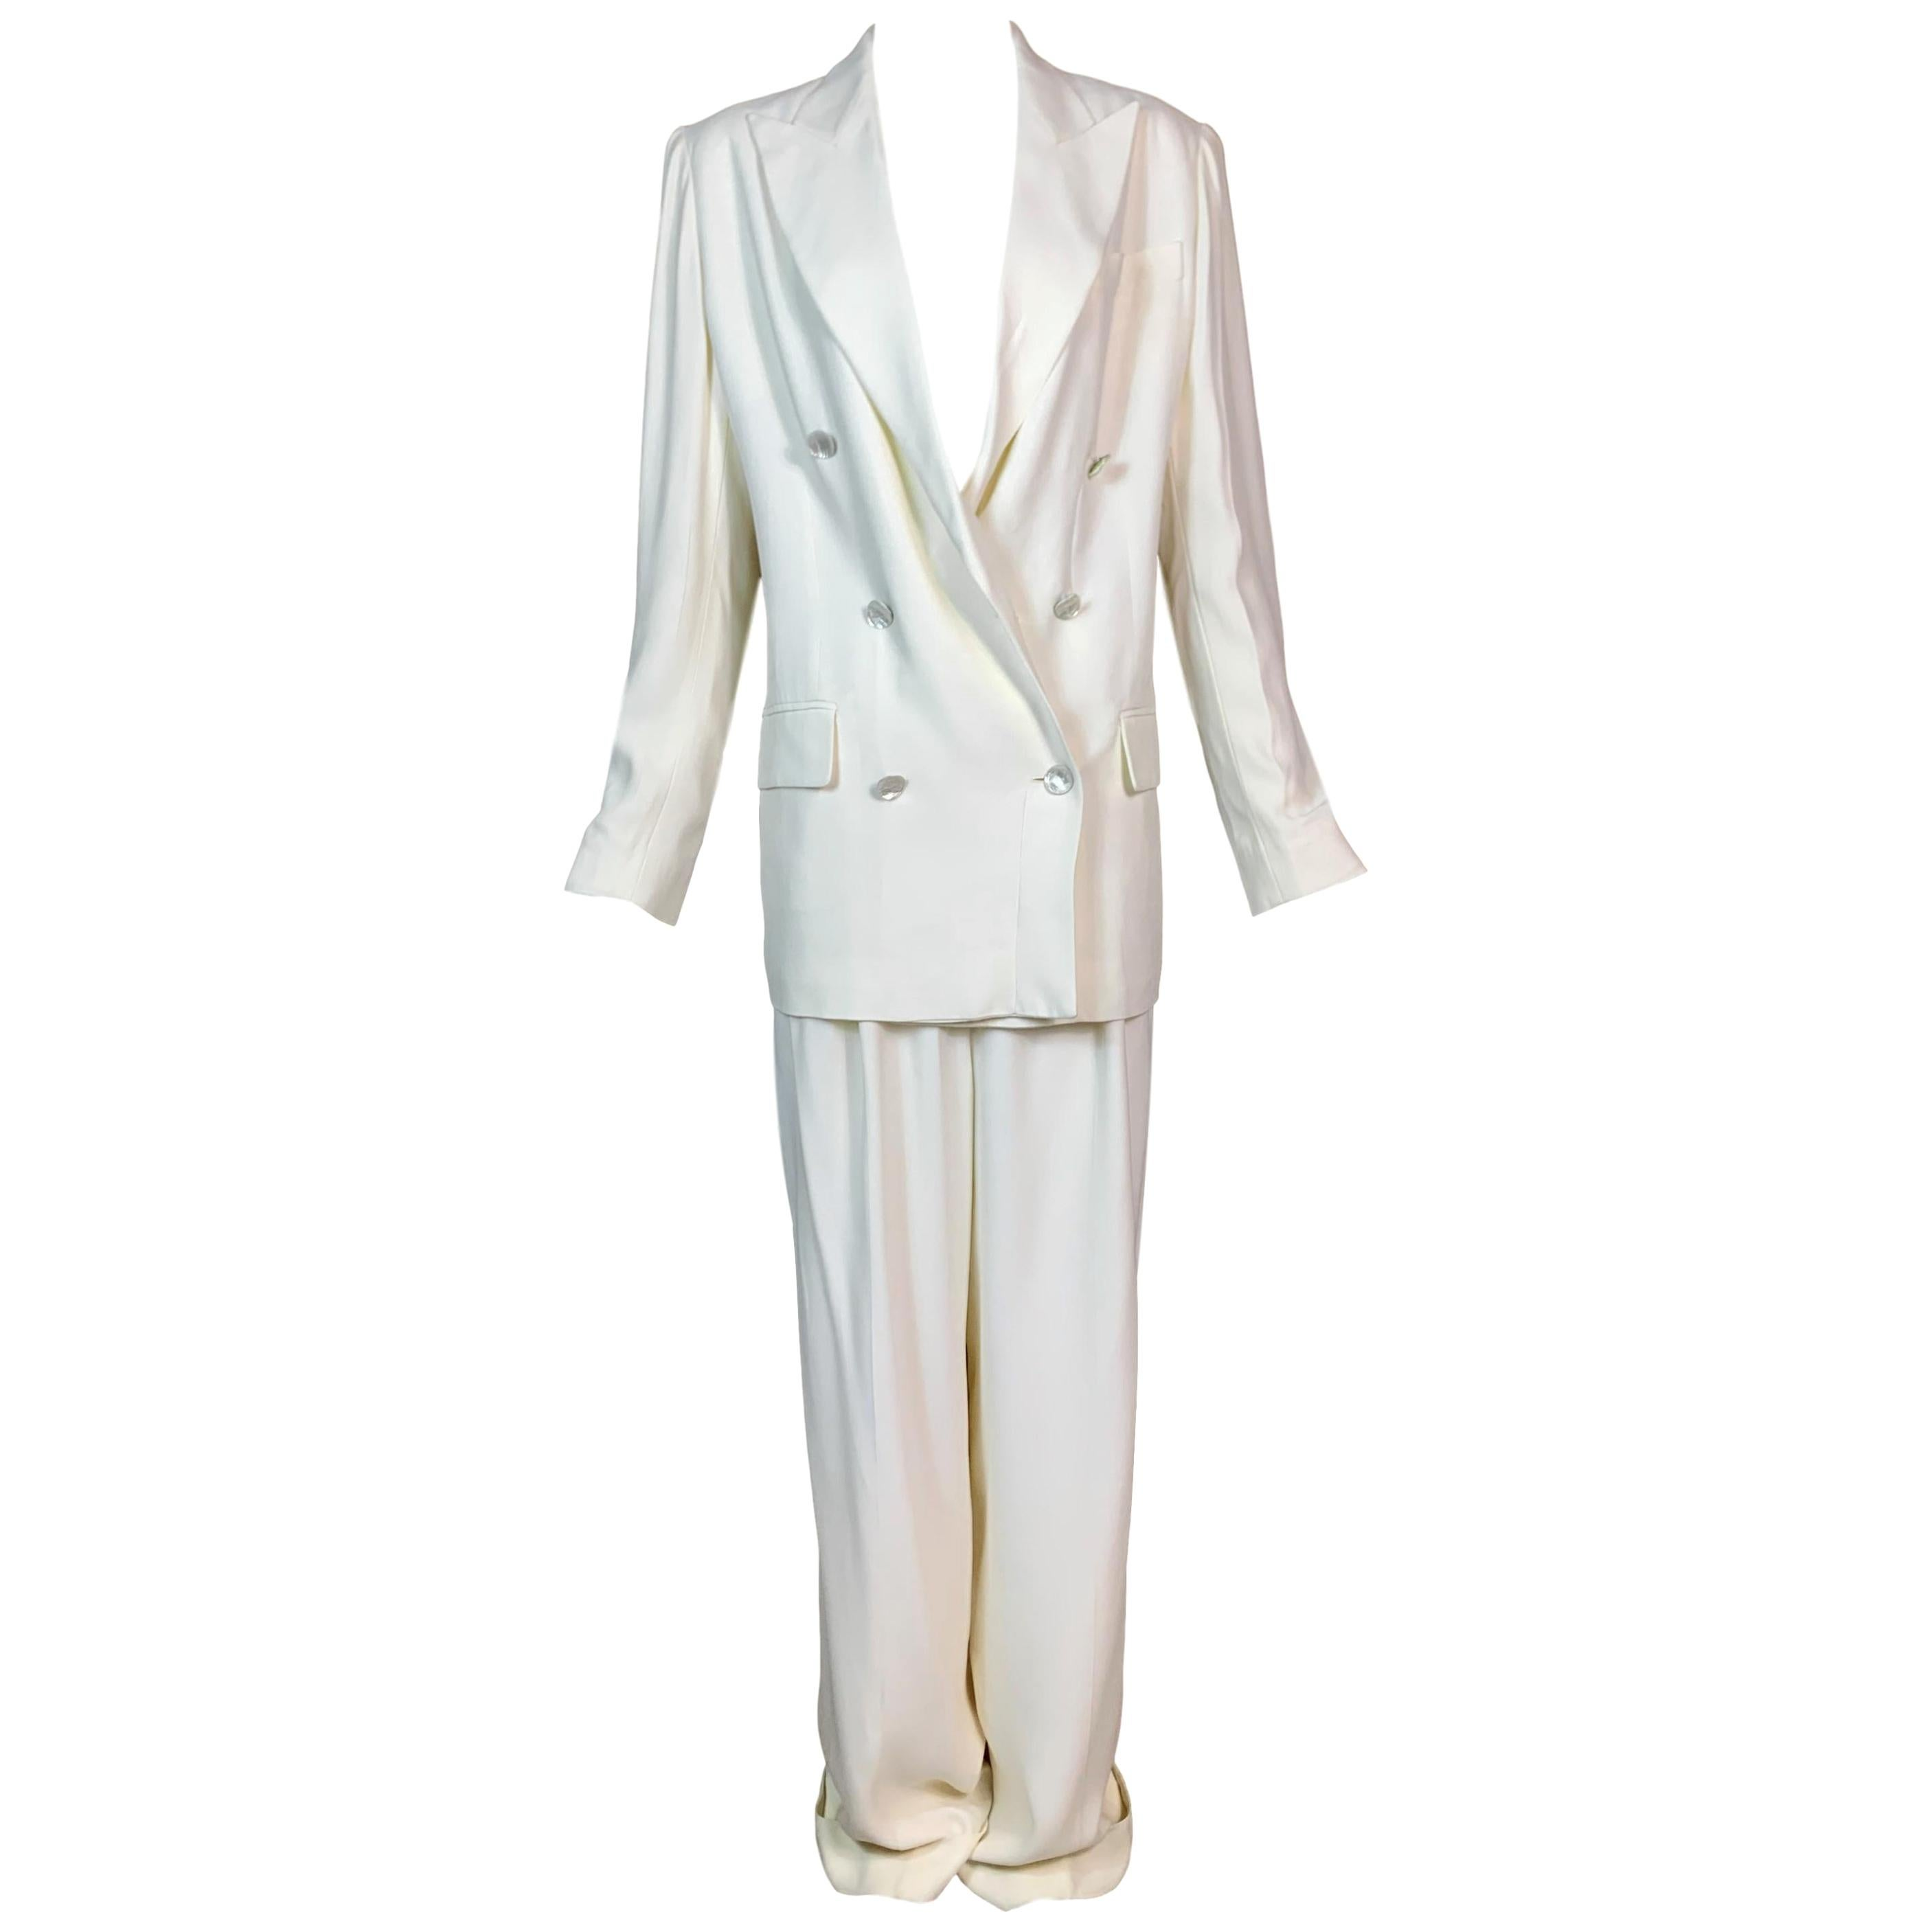 S/S 1998 Christian Dior by John Galliano 1920's Starlet Baggy Ivory Pant Suit